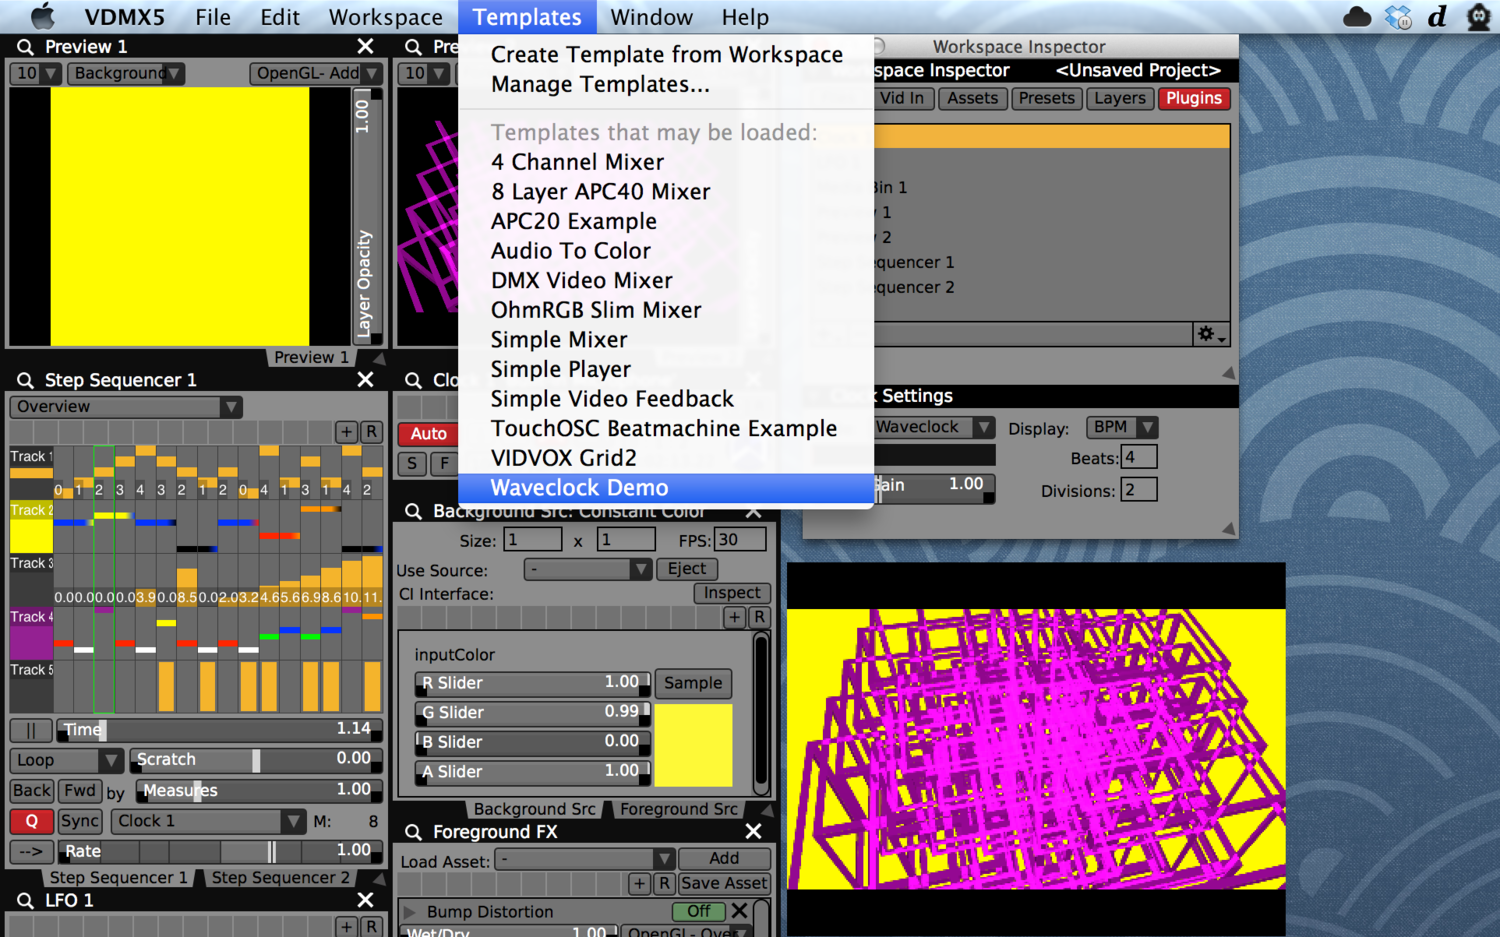 The completed  Waveclock Demo example  can be loaded from the Templates menu.